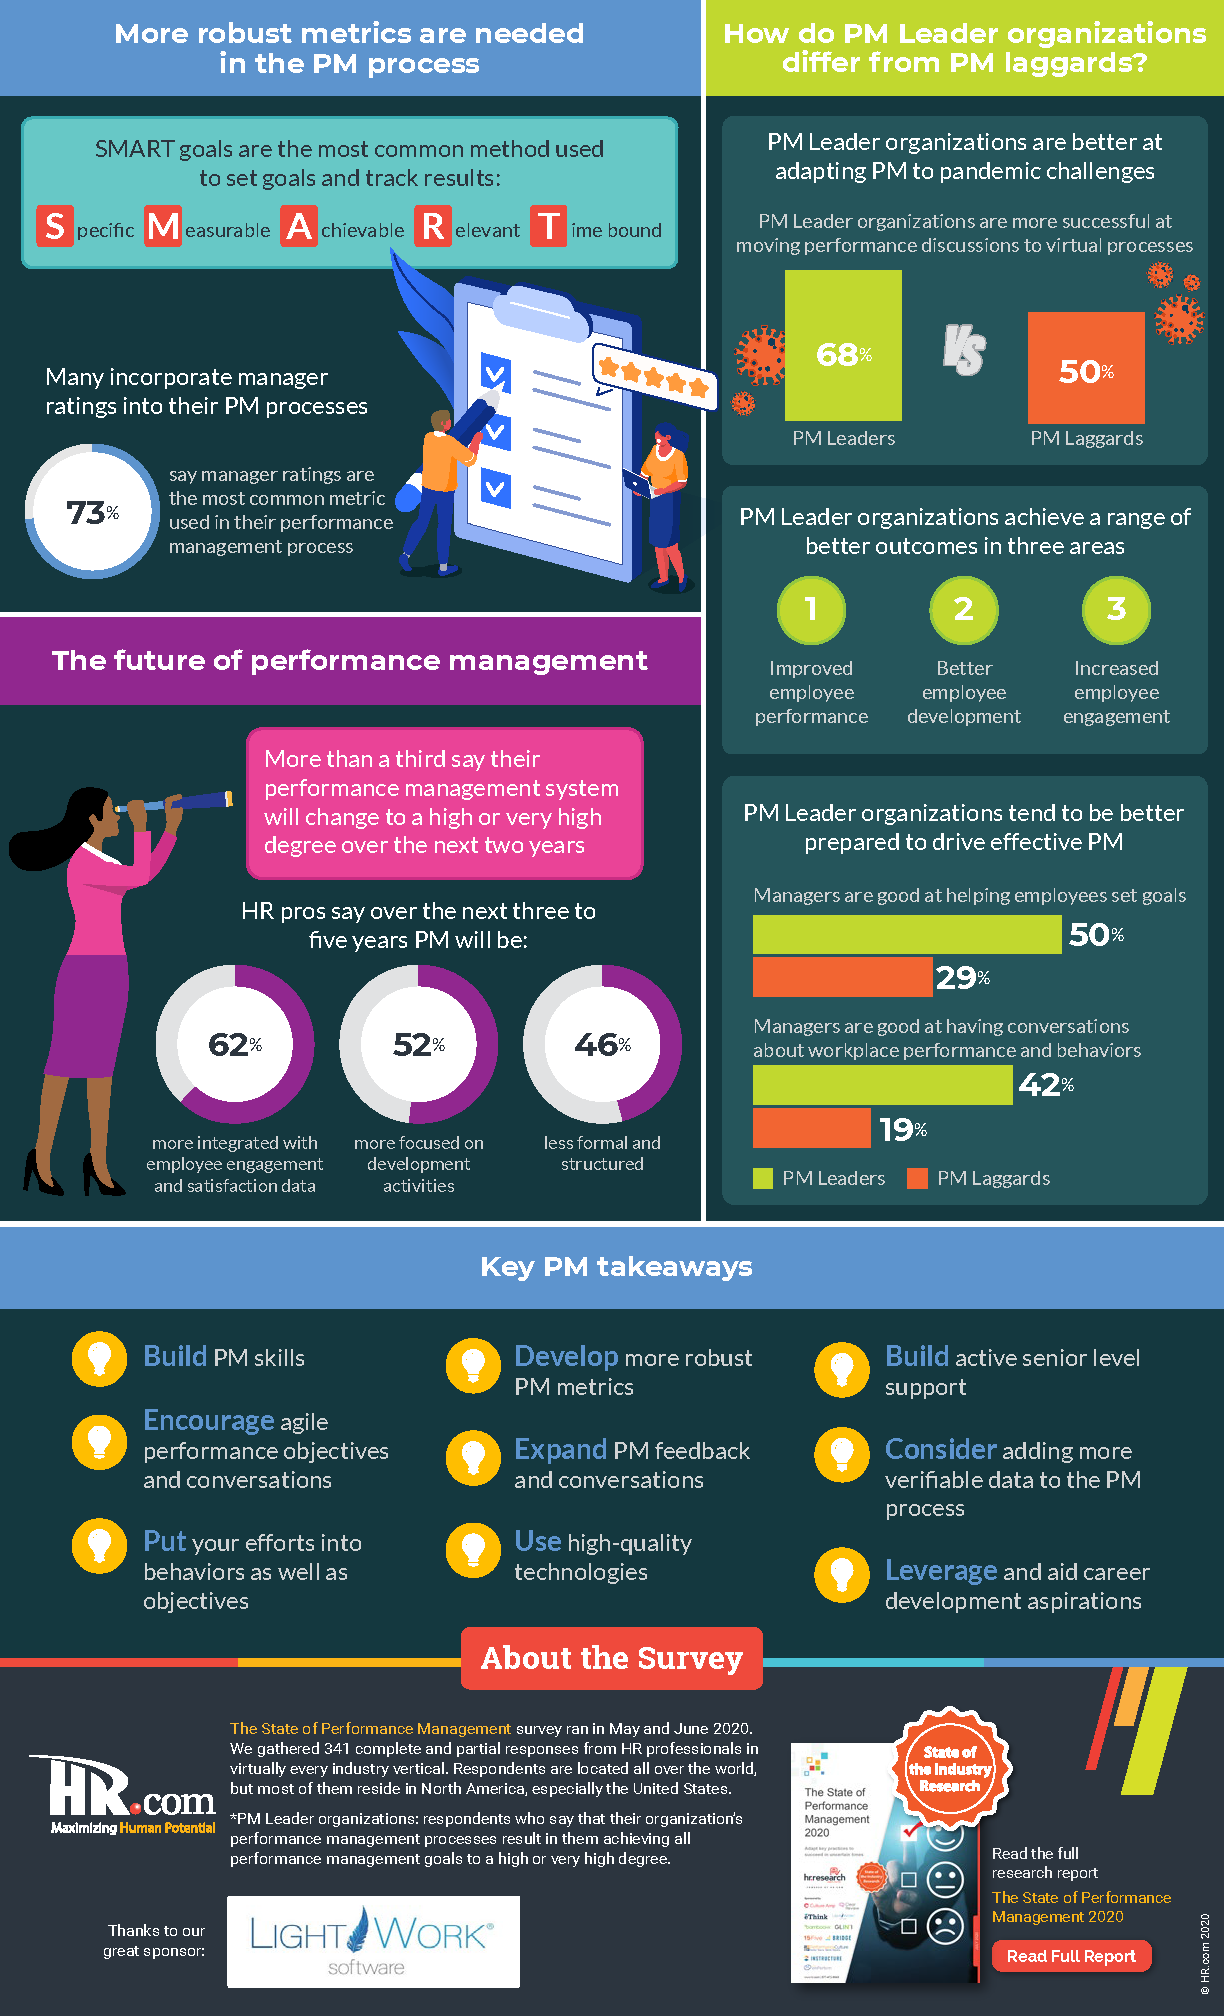 The_State_of_Performance_Management_Infographic_hrdotcom_LightWork_Page_2